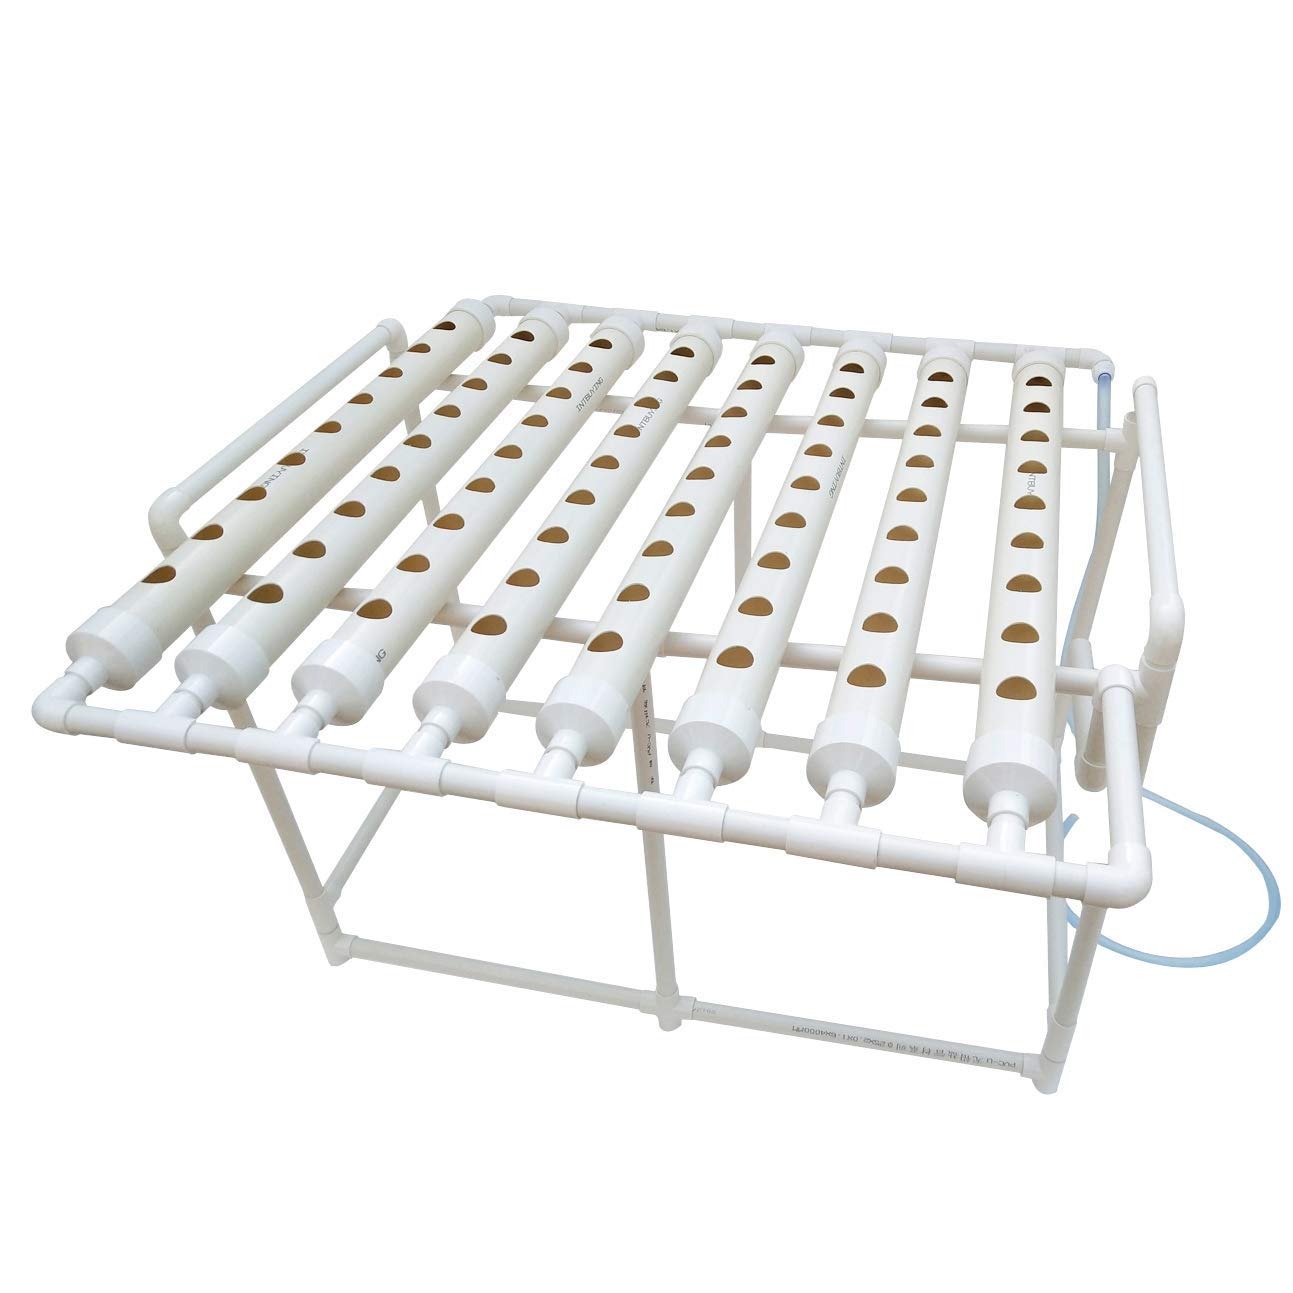 INTBUYING Hydroponic Grow Kit Plant Growing System for Leafy Vegetables 8 Pipes 1 Layer 72 Sites by INTBUYING